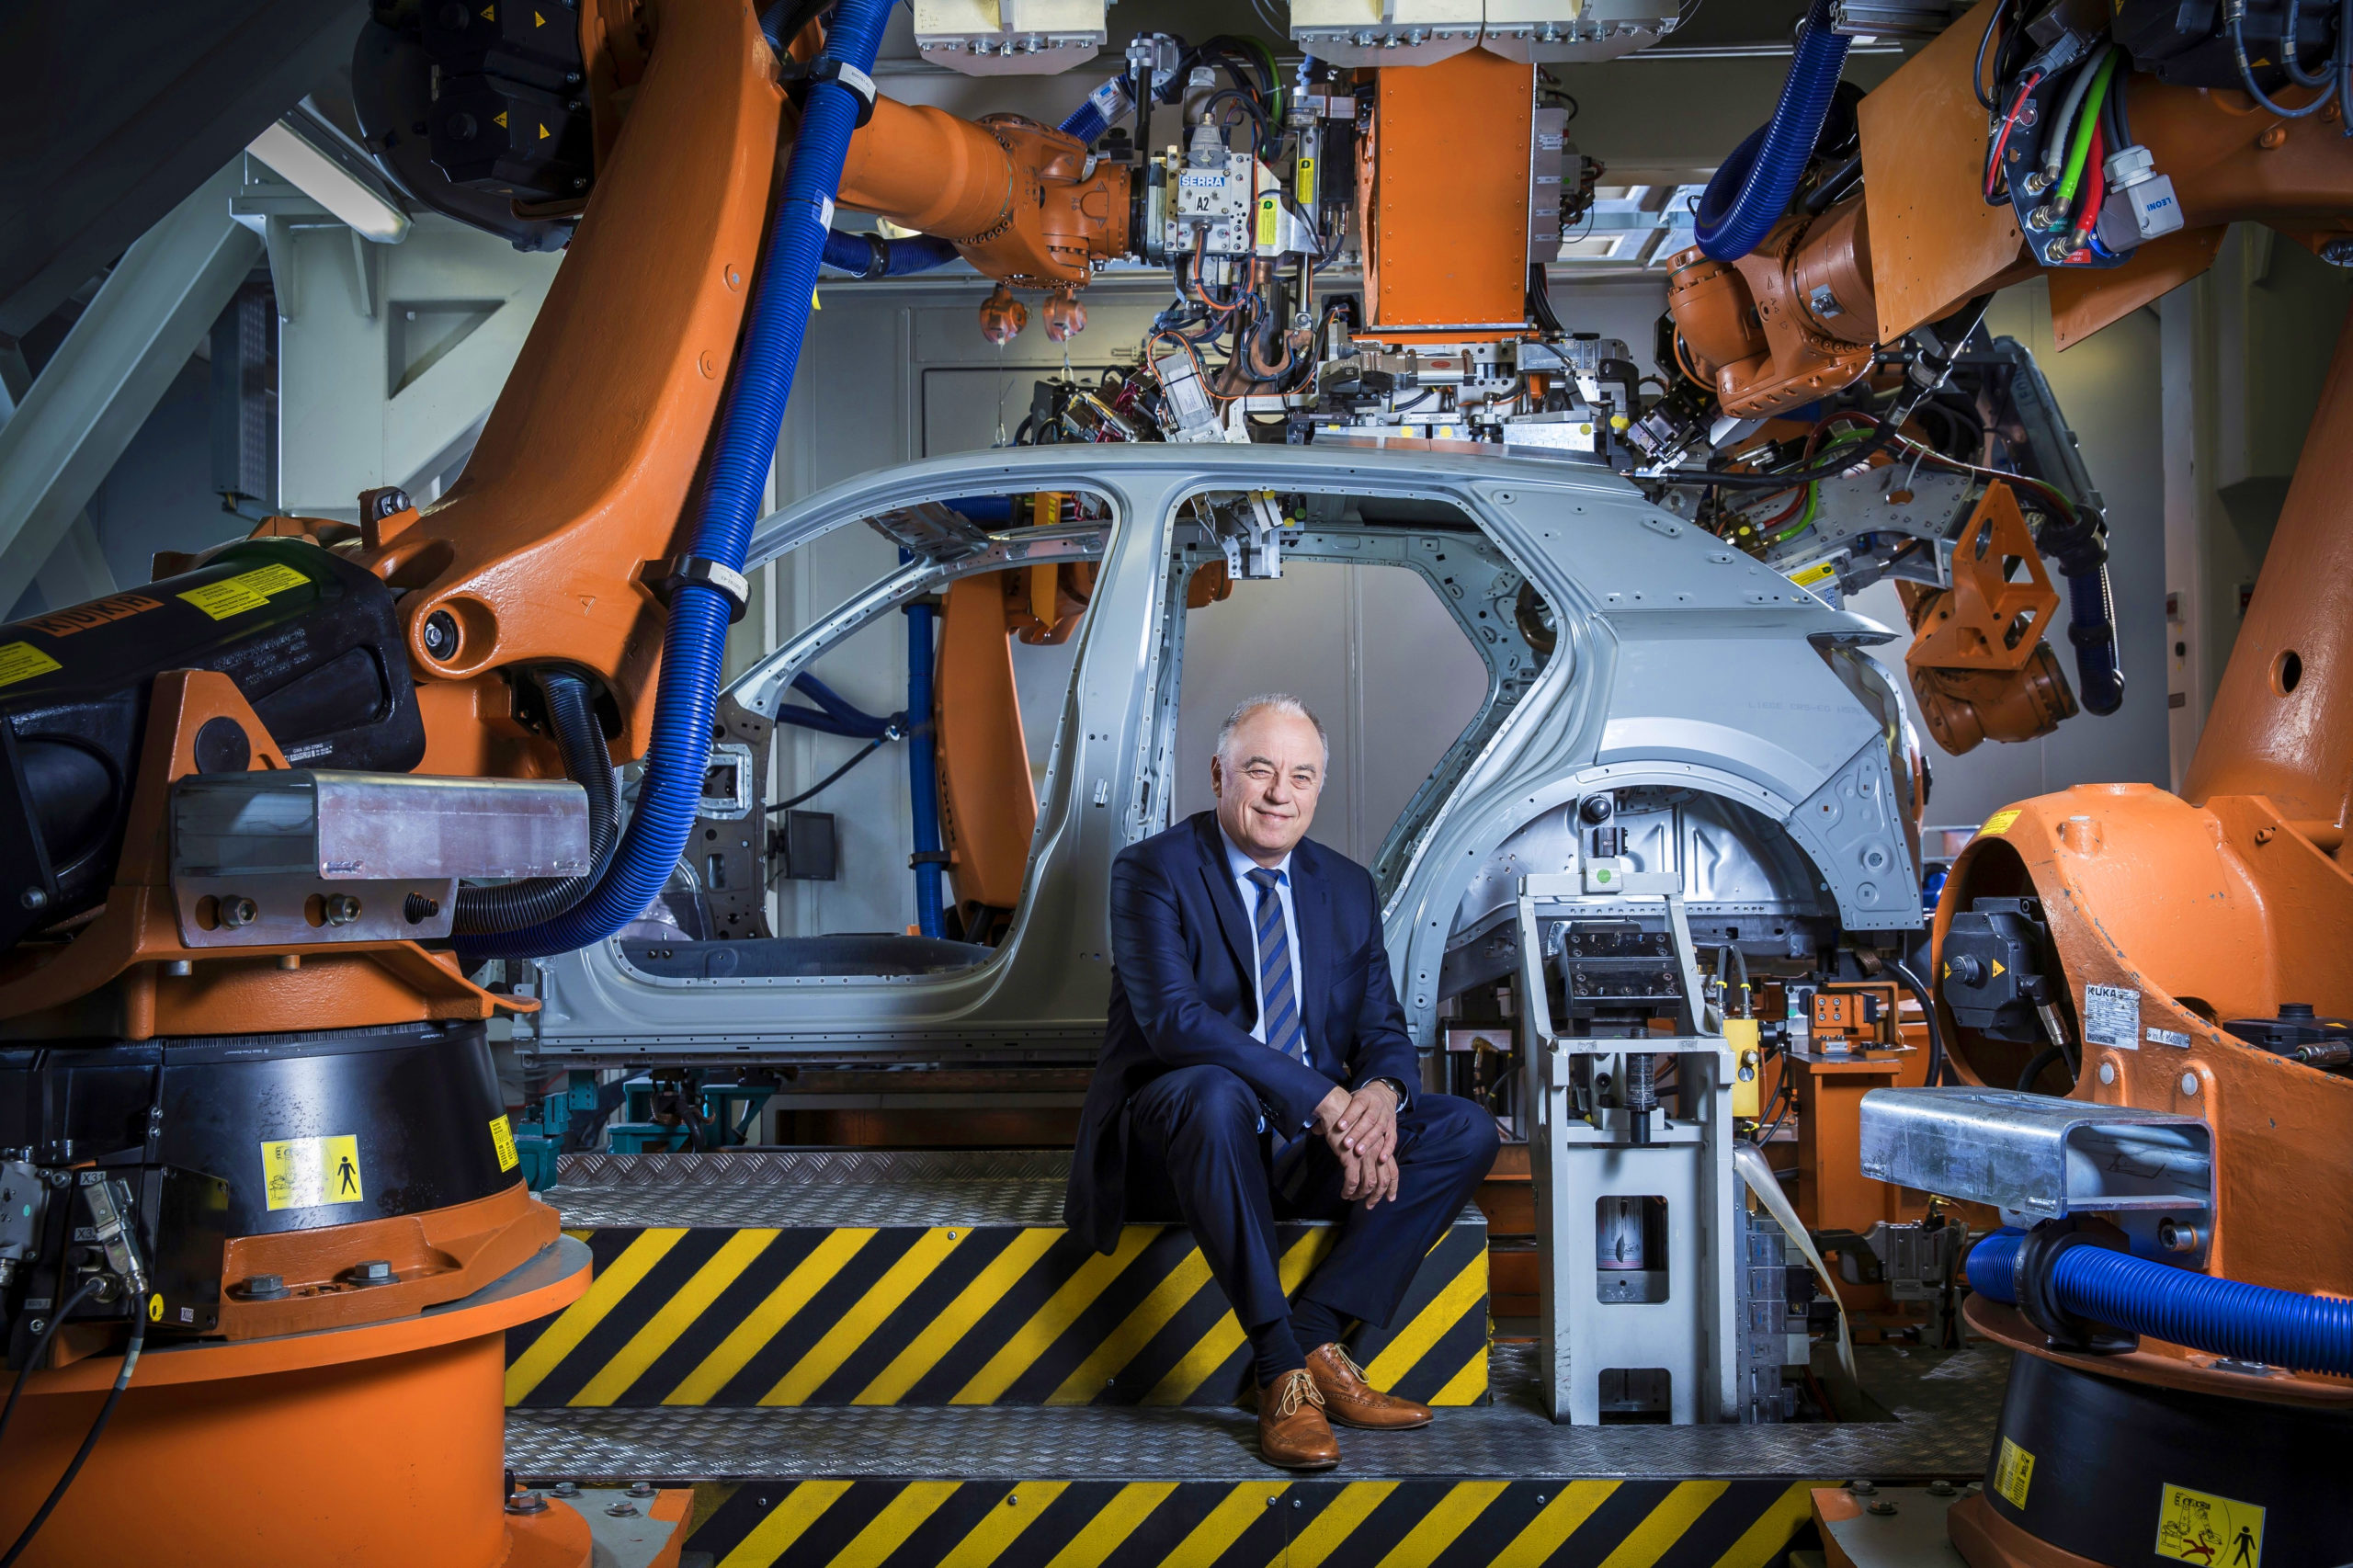 """We pulverized our complete organization"": With the reorganization of production – project ""P"" – Production Board Member Peter Kössler and his team, together with Porsche Consulting, achieved the largest transformation in the history of Audi."